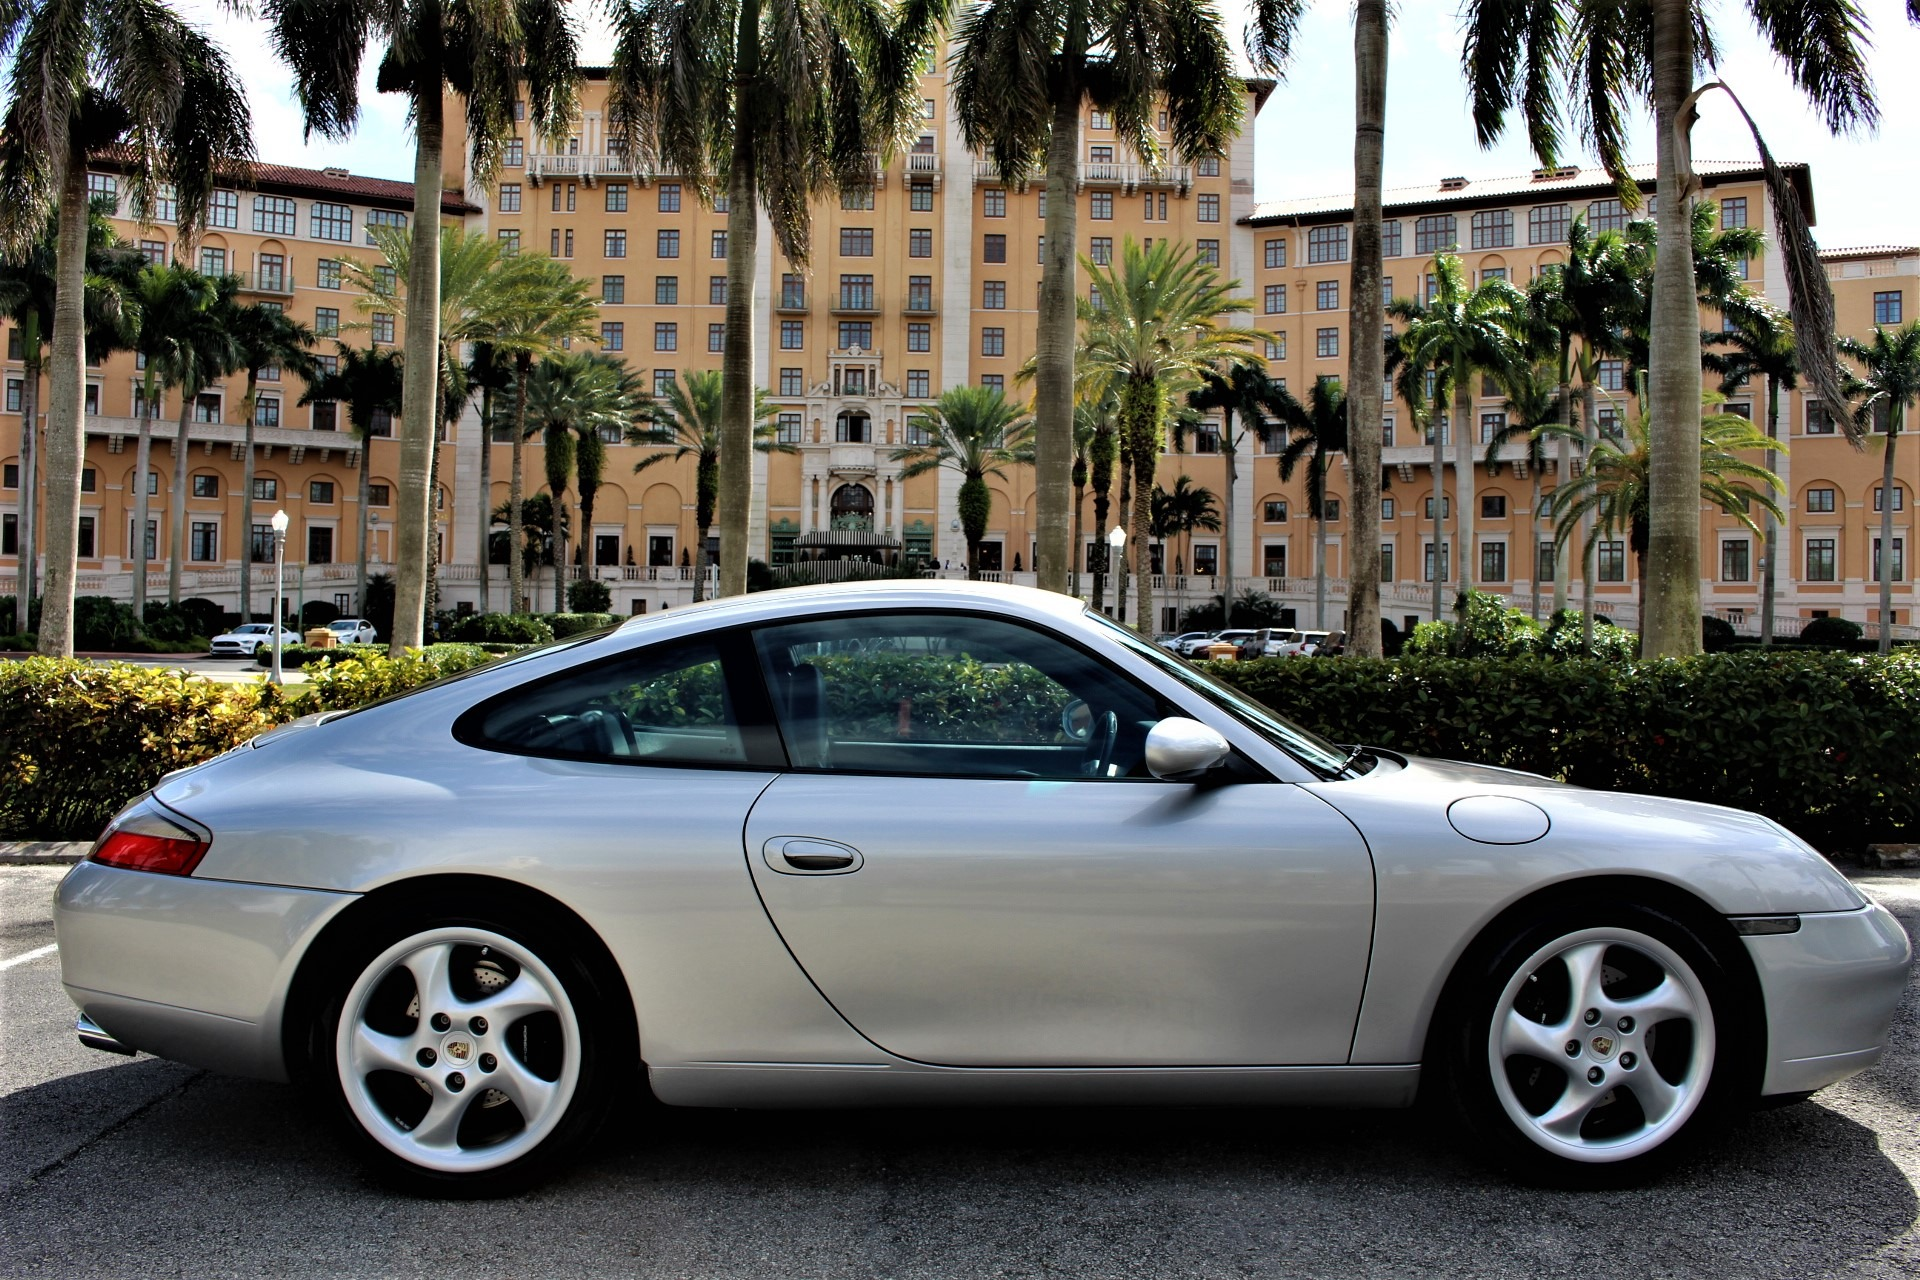 Used 2000 Porsche 911 Carrera for sale Sold at The Gables Sports Cars in Miami FL 33146 1